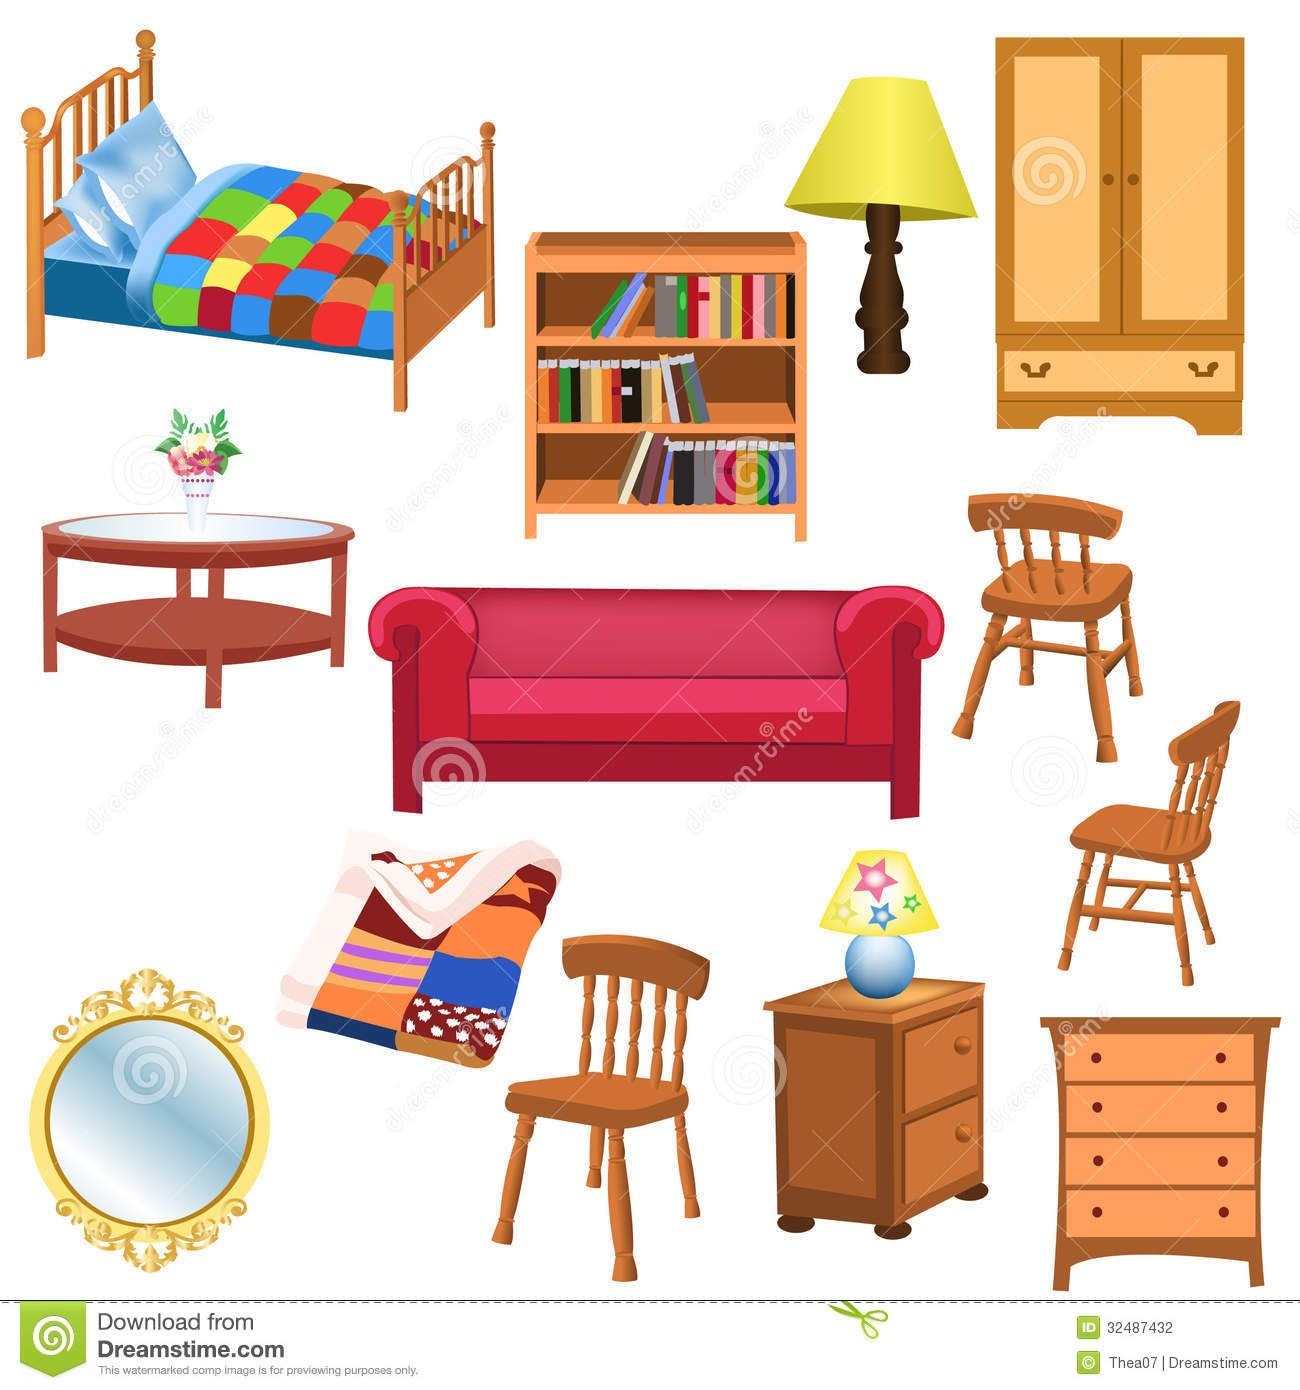 Furniture clipart living room. Places to visit